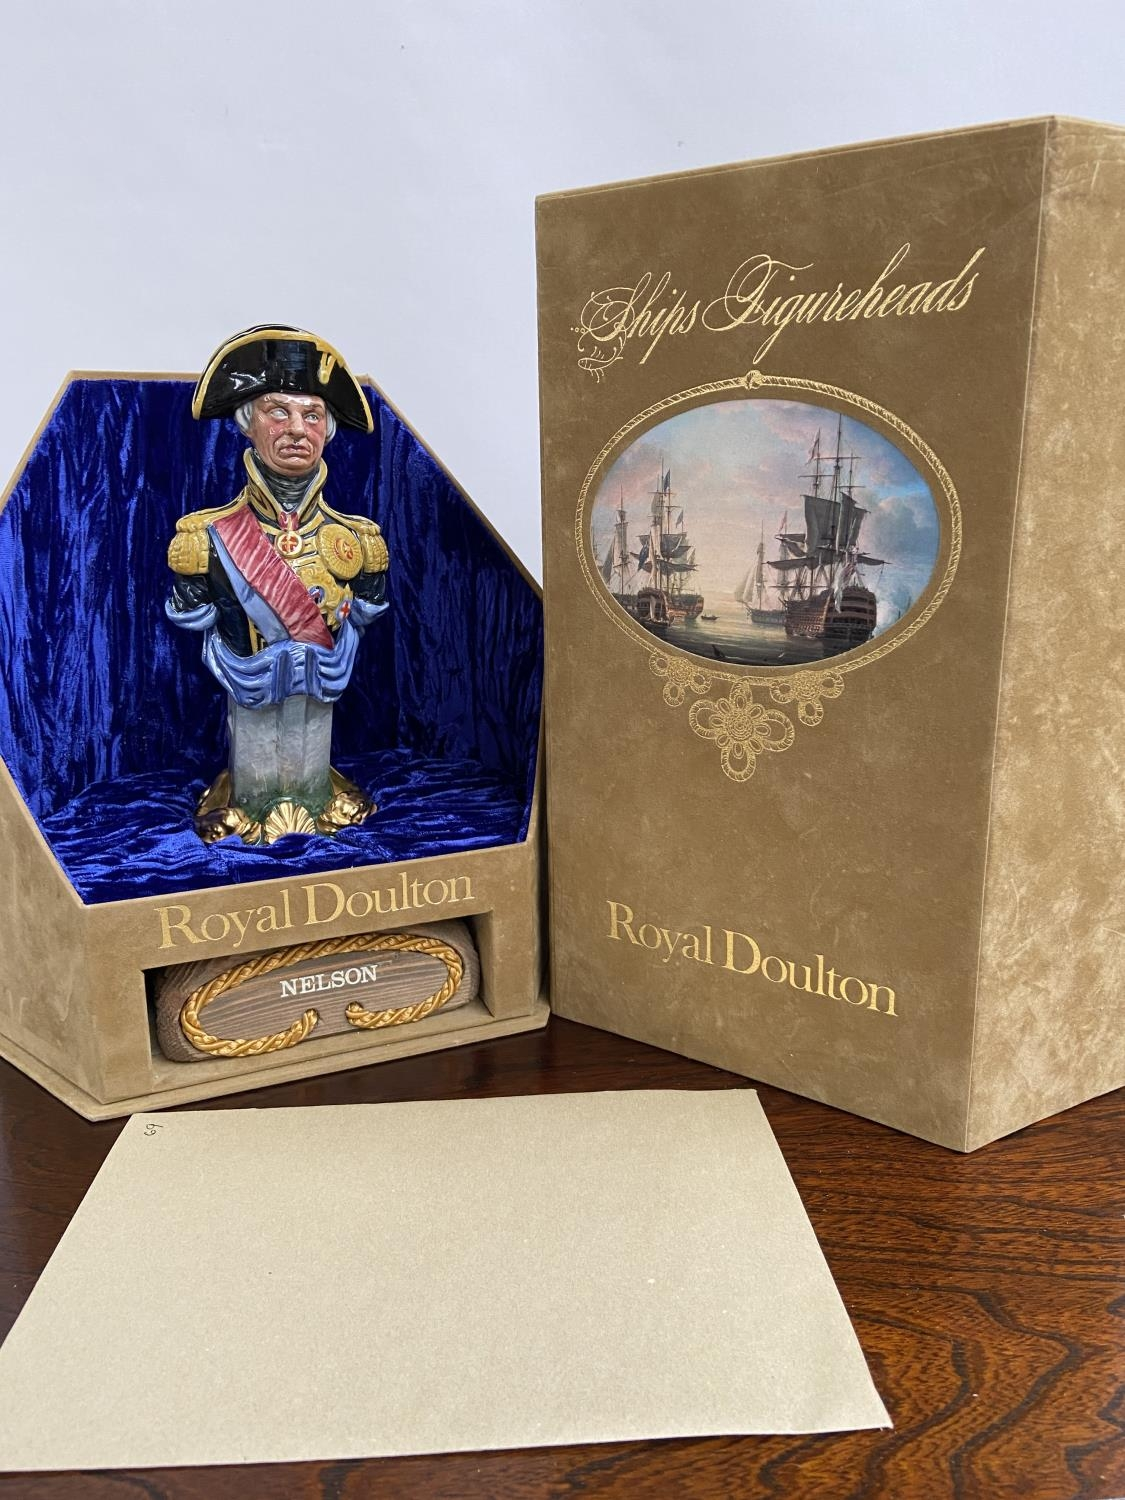 A Rare Royal Doulton Ships Figureheads bust titled 'Nelson' HN2928 [limited edition 69/950] comes